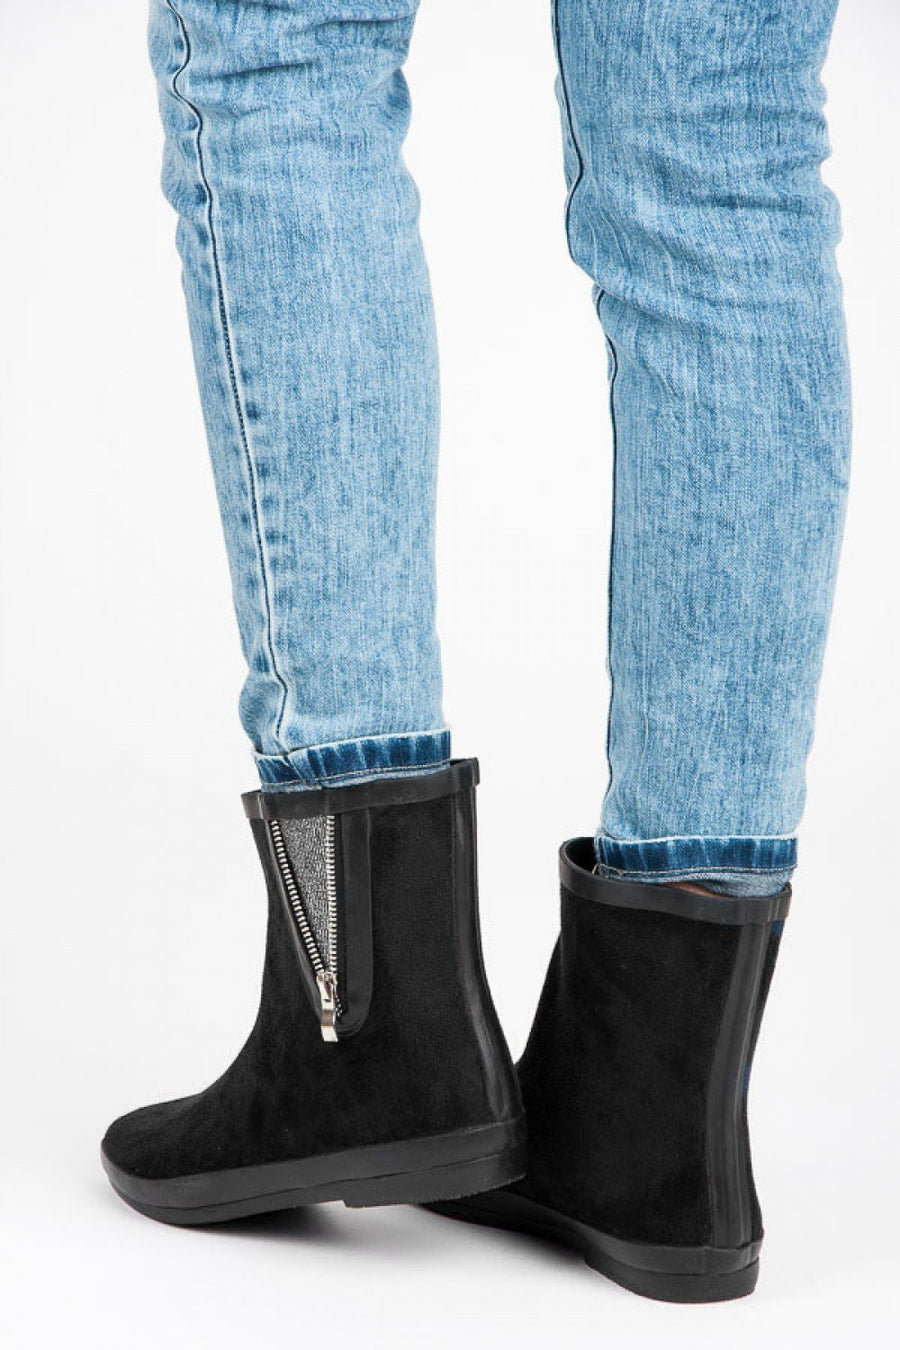 Wellingtons 78583 Zoki-Over the Knee High Boots, Thigh High Boots-Zoki-TRESFANCY